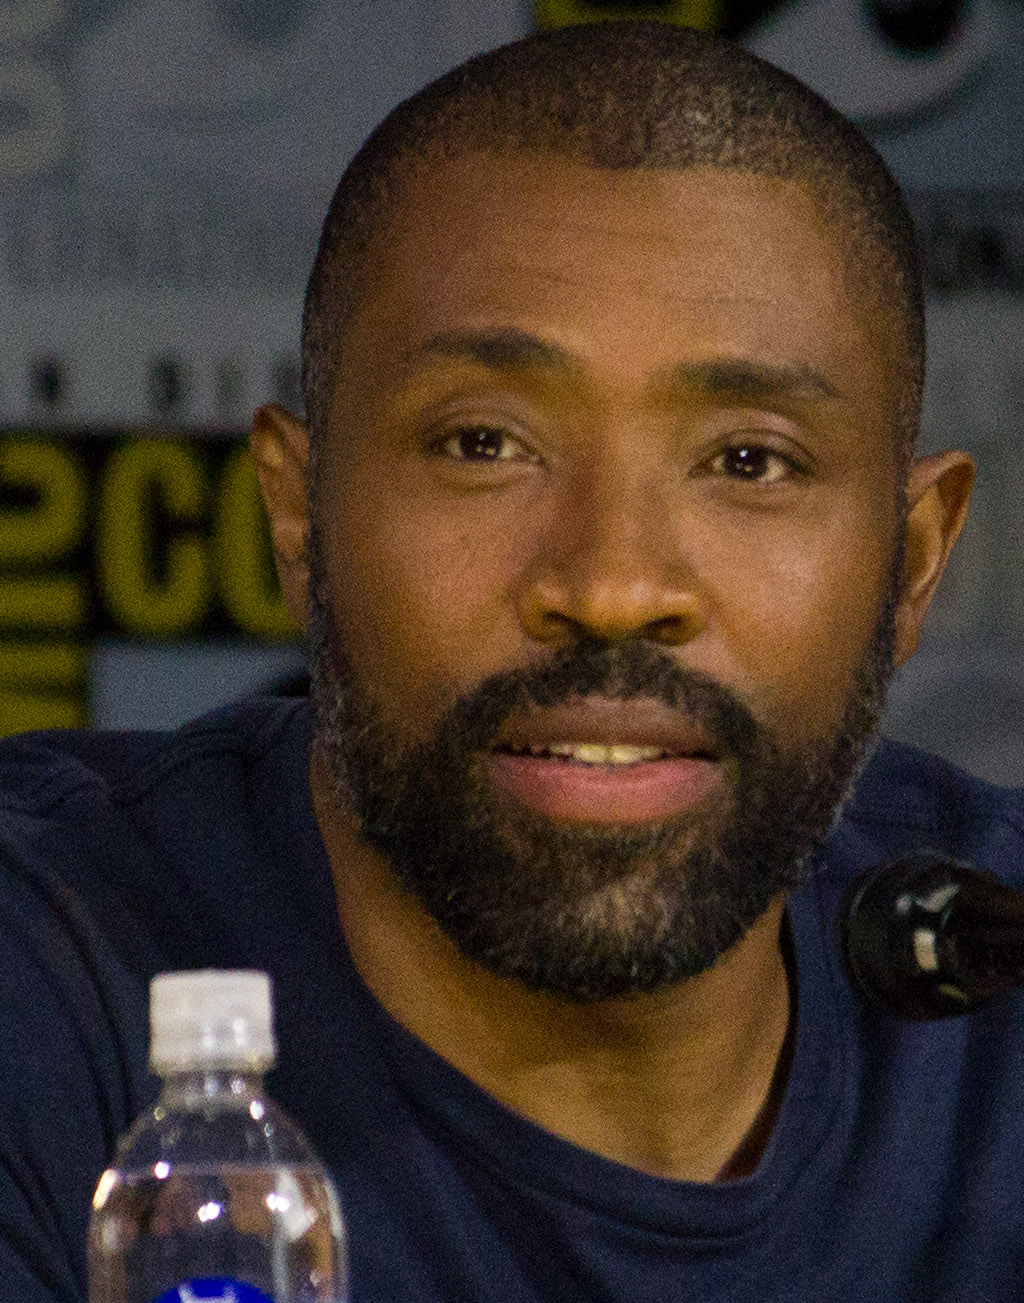 Caption: Cress Williams at 2018 San Diego Comic Con